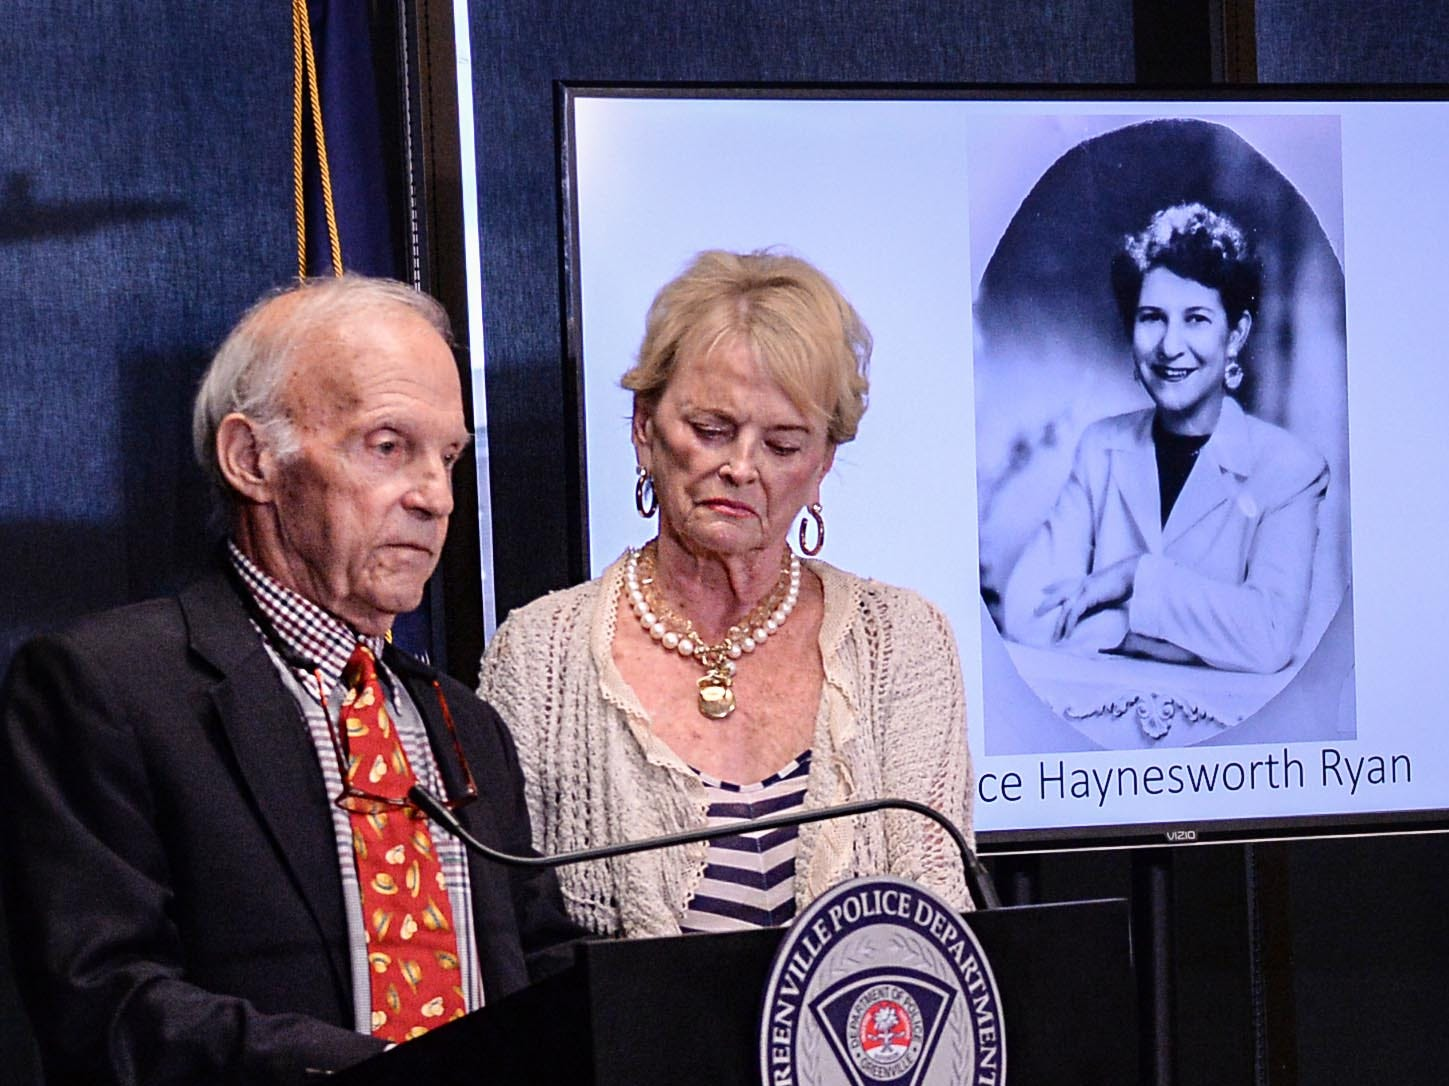 Joe Ryan, left, of Greenville stands with his wife near a photo of his late mother Alice Haynesworth Ryan, during a city police announcement of an arrest in the 1988 cold case homicide in Greenville Monday. Police arrested suspect Brian Keith Munns.